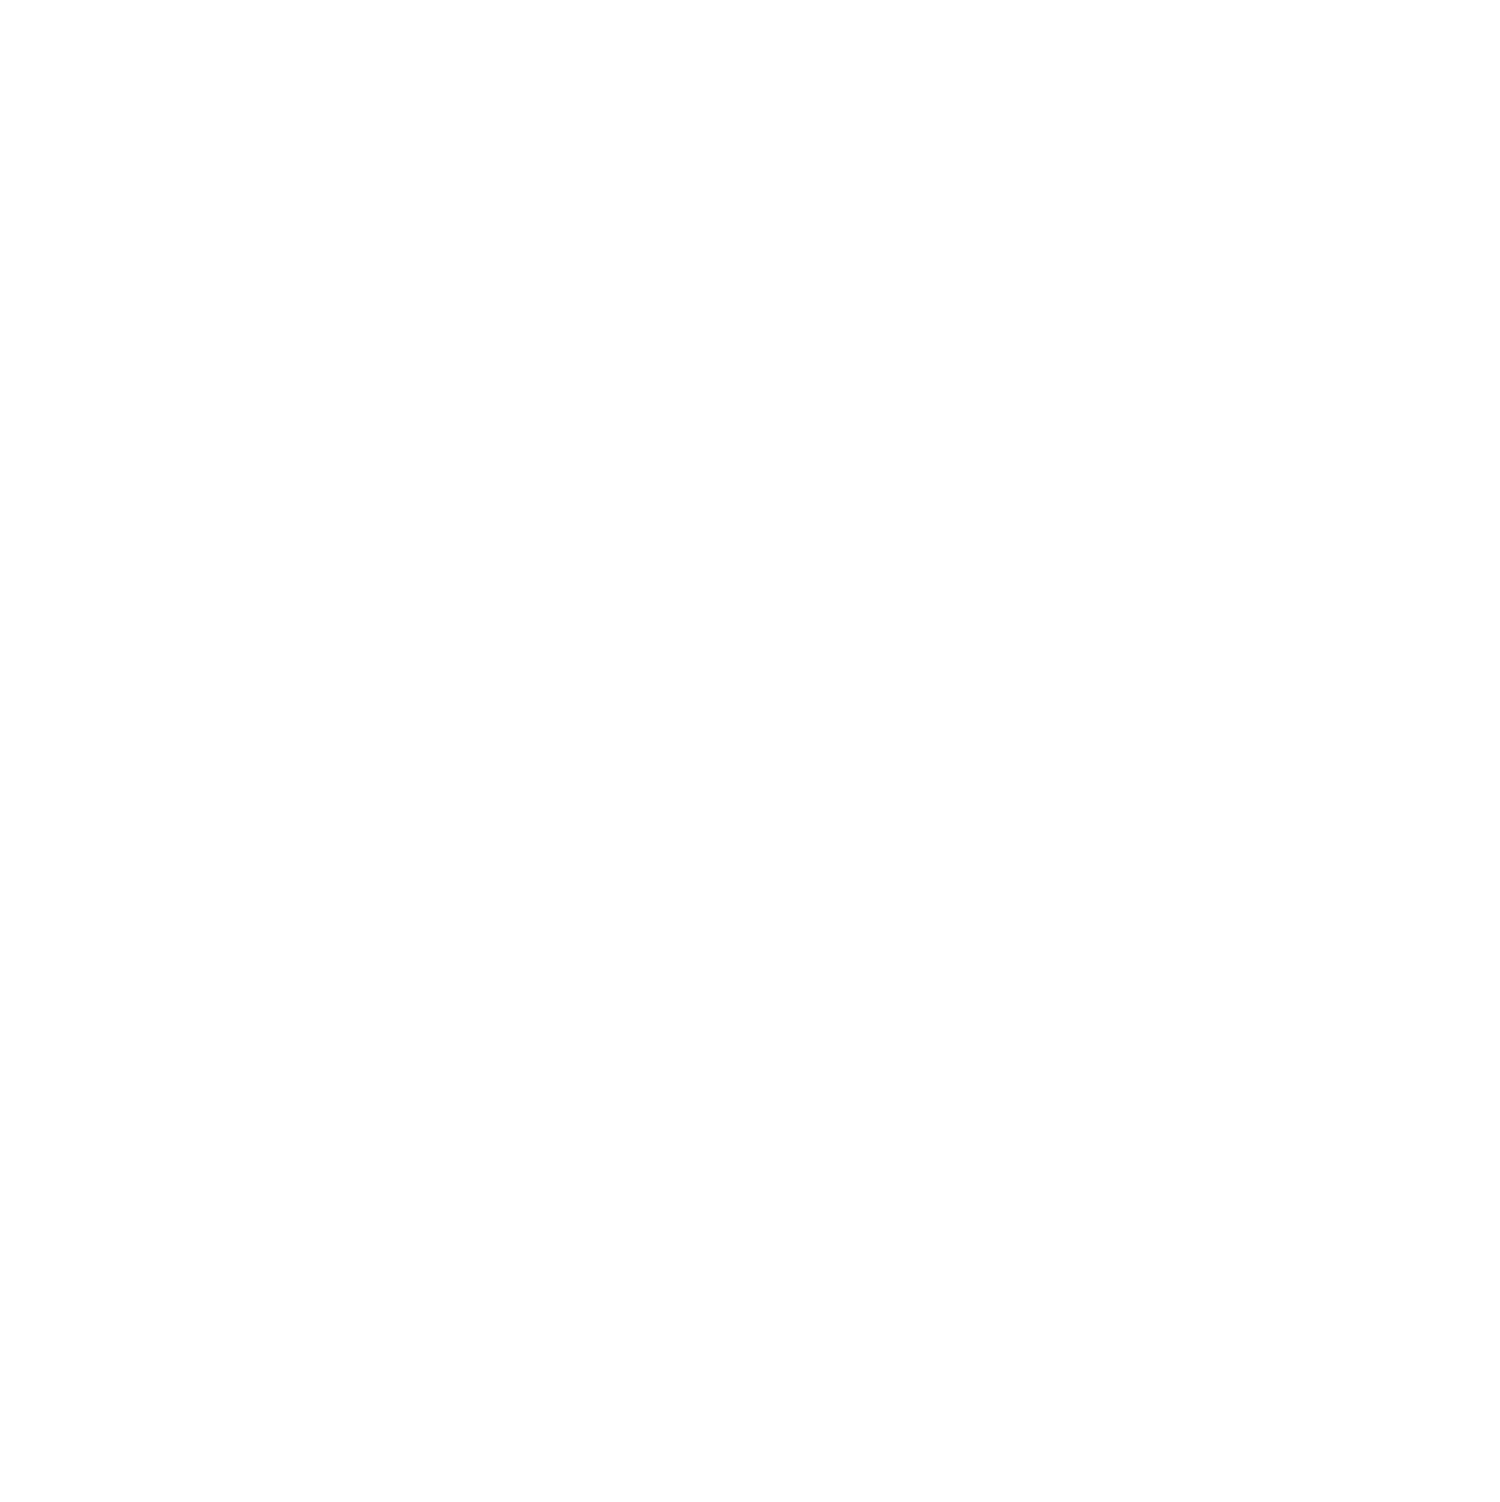 national-science-foundation-logo-png-5.png